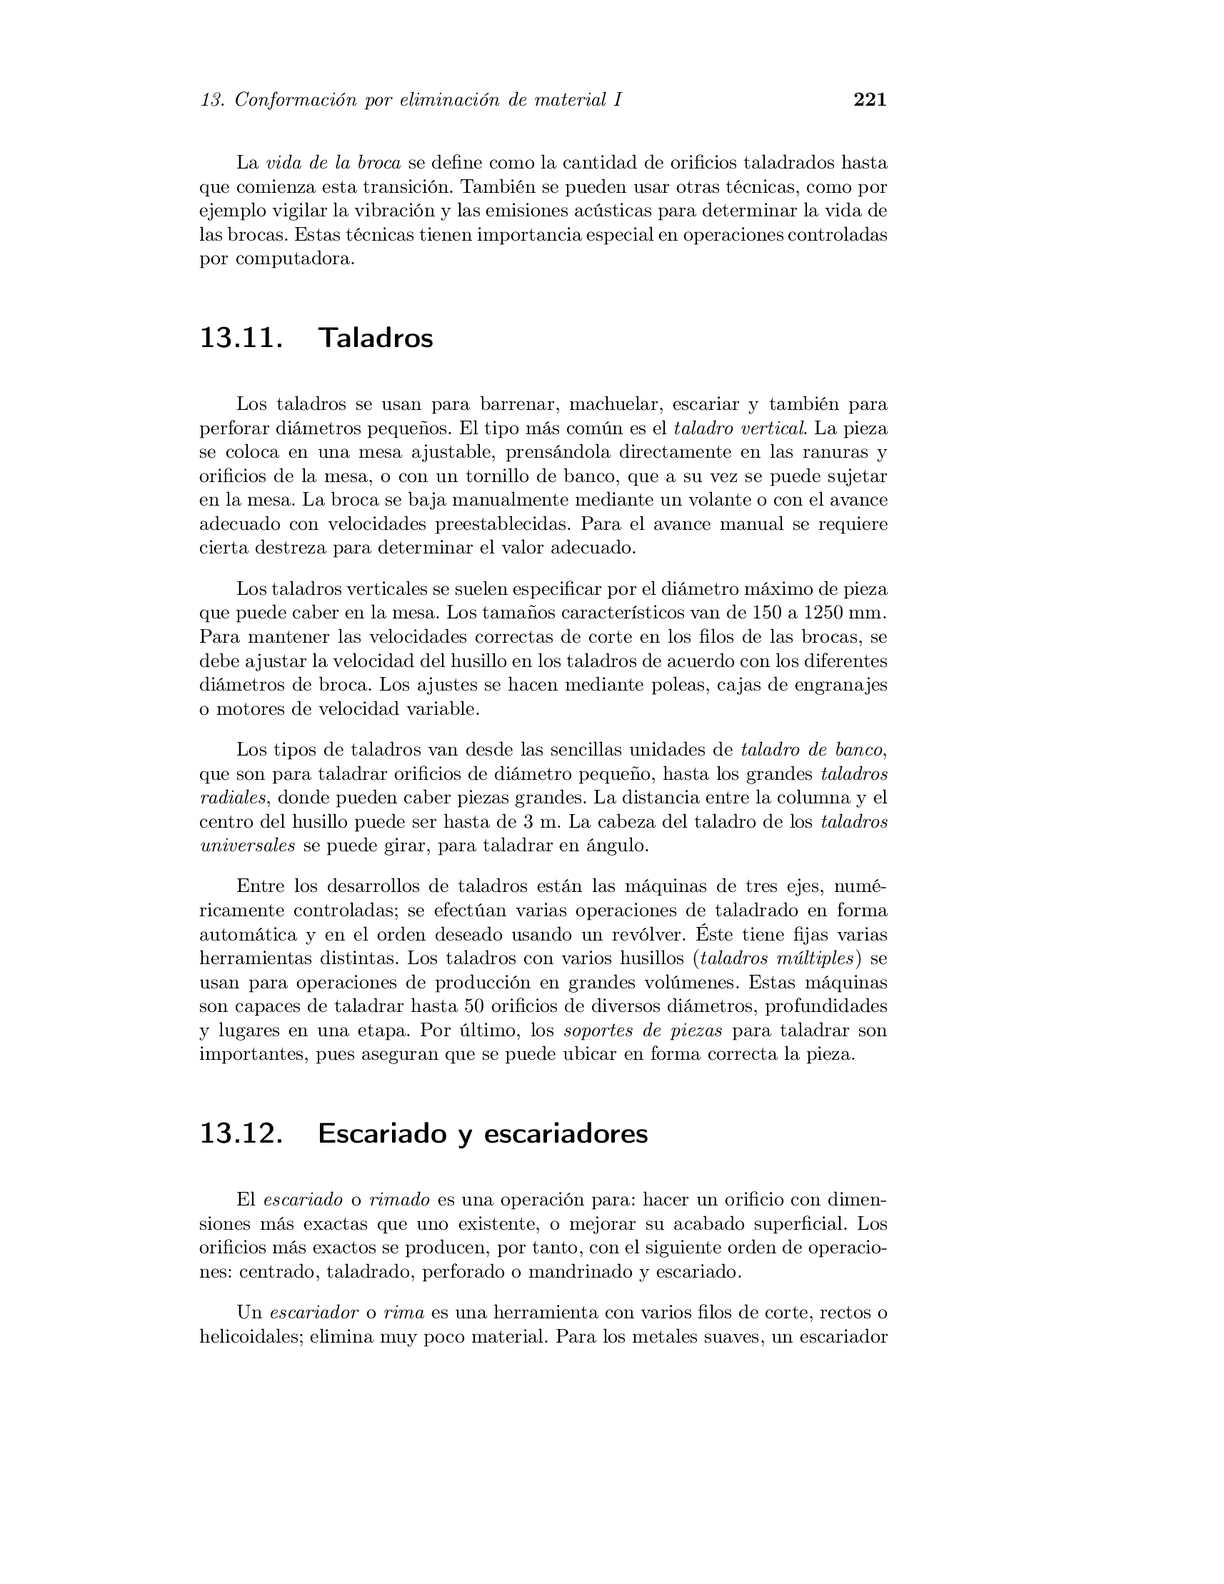 Page 221